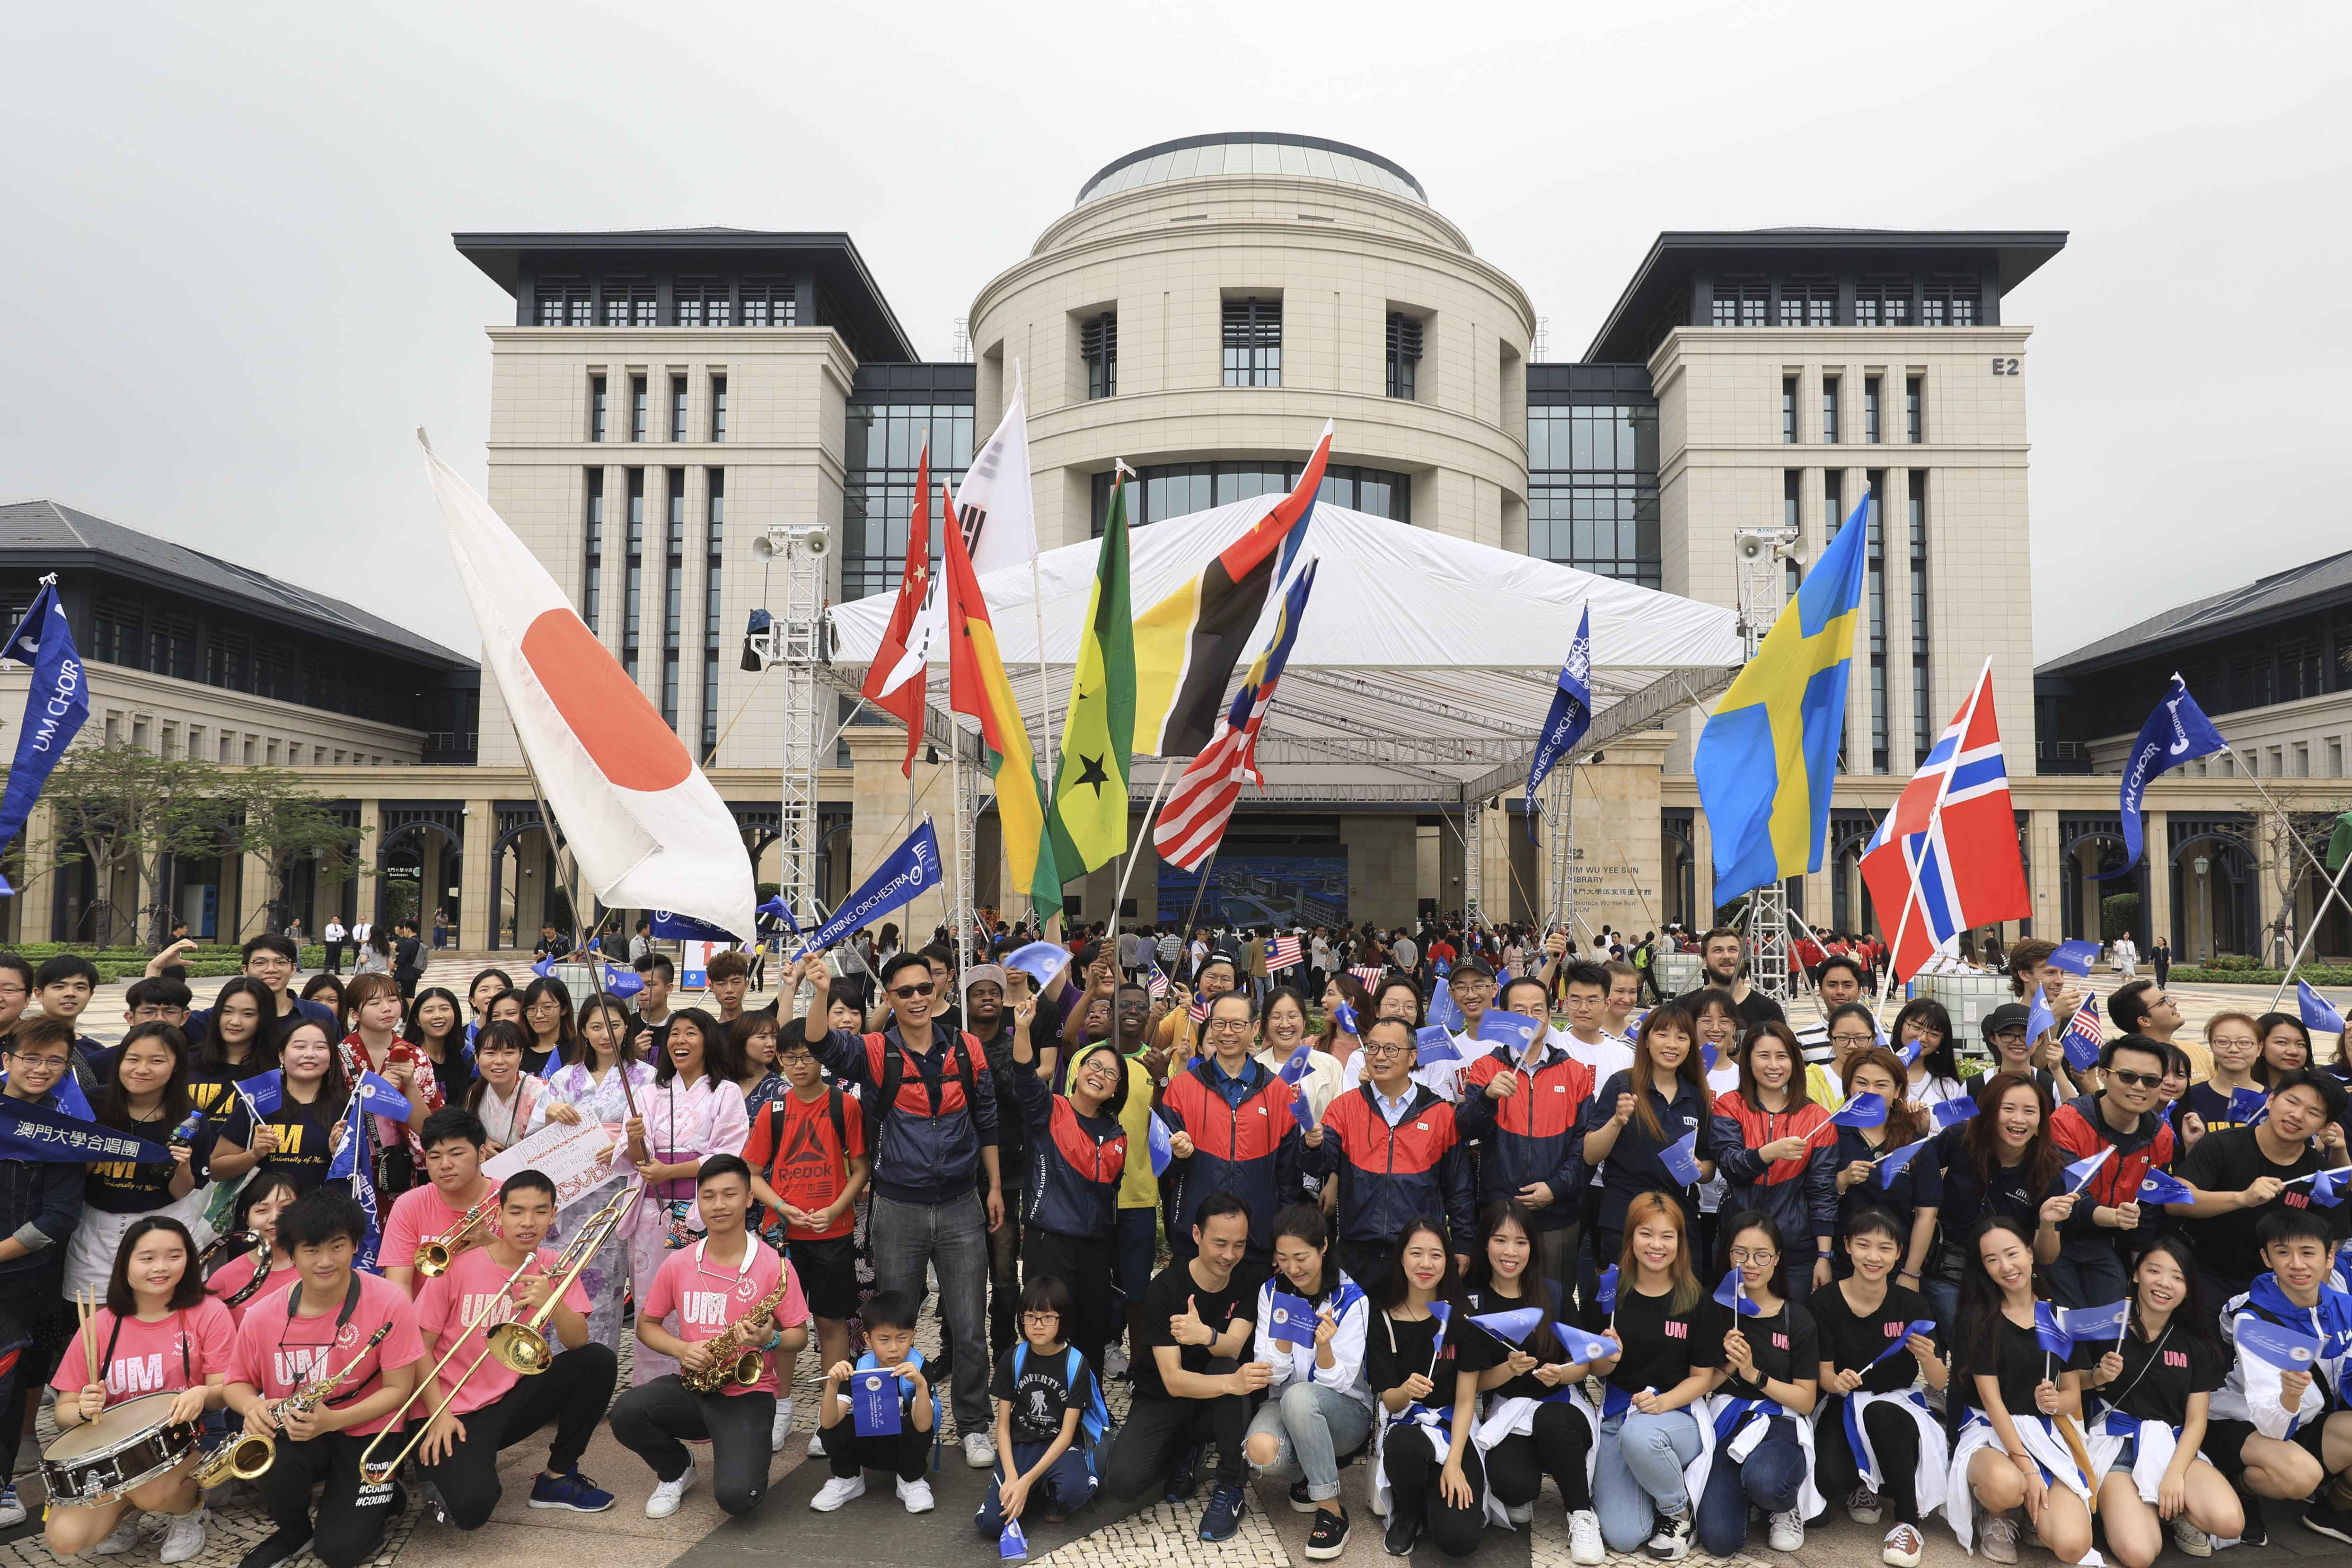 A parade by international students